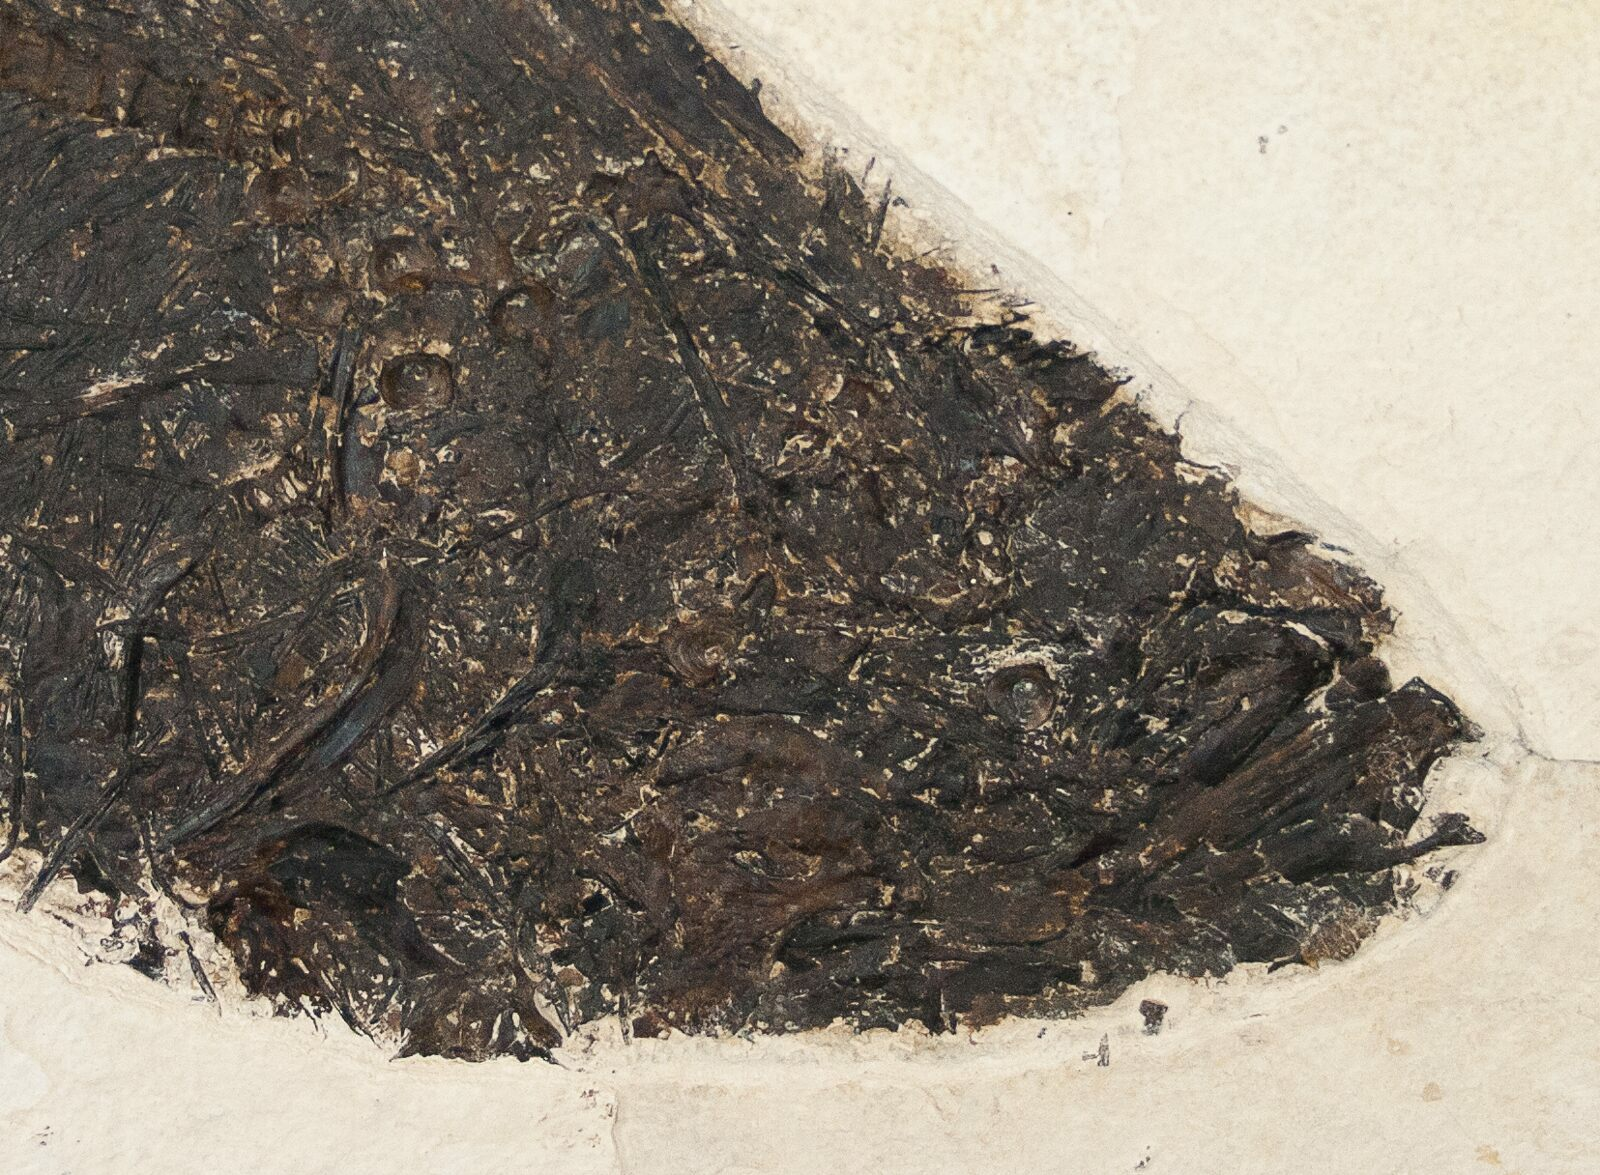 19 5 diplomystus fish fossil wyoming for sale 15135 for Fish fossils for sale